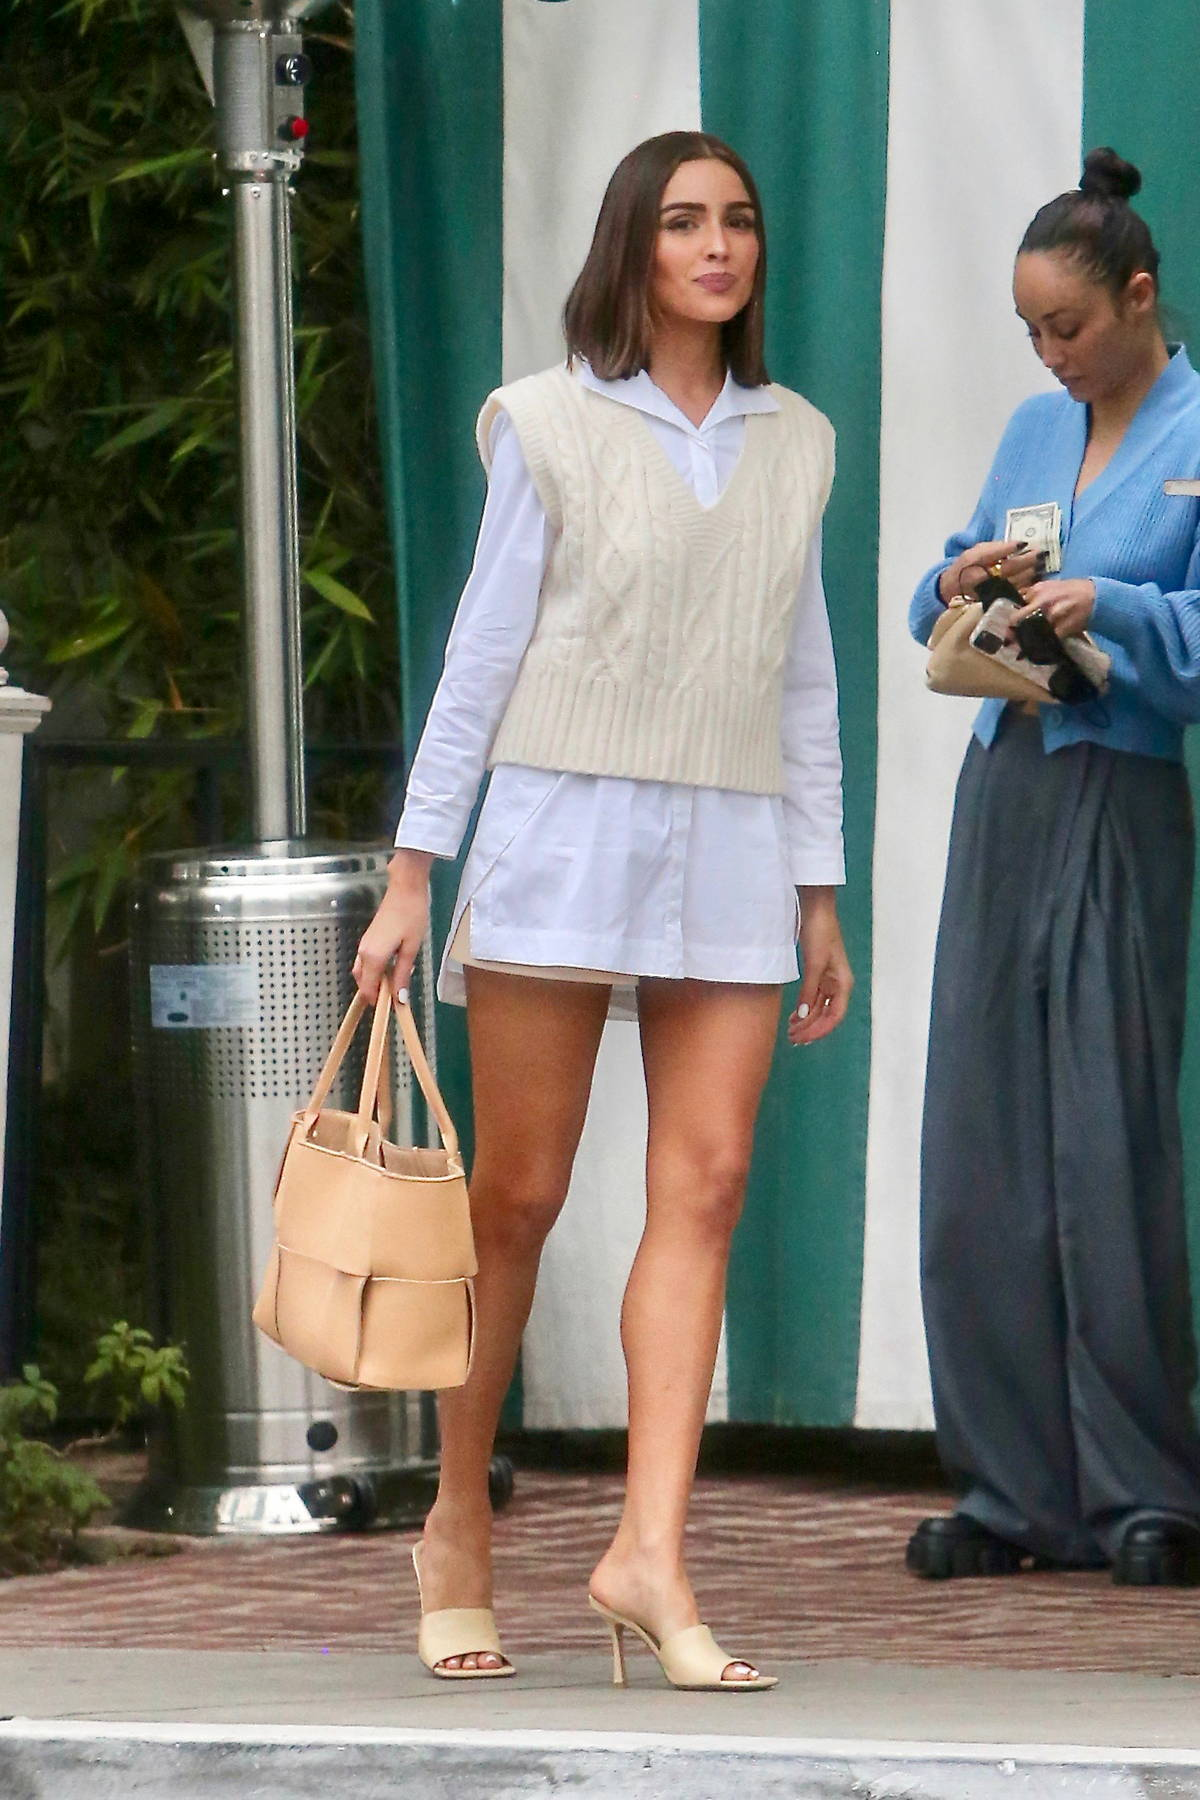 Olivia Culpo shows off her slender legs while out for lunch with Cara Santana in West Hollywood, California